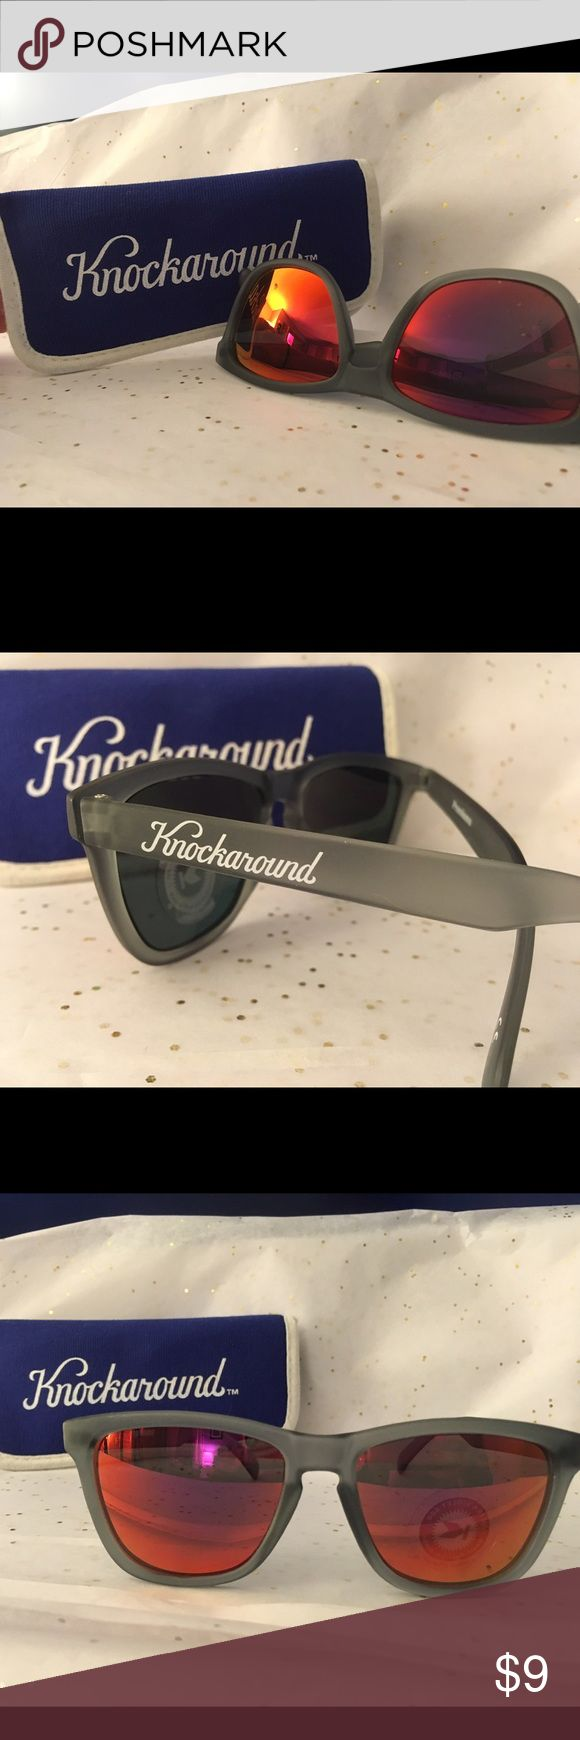 Brand New No Tags Knockaround Sunglasses w/case FROSTED GREY / RED SUNSET CLASSICS Accessories Sunglasses